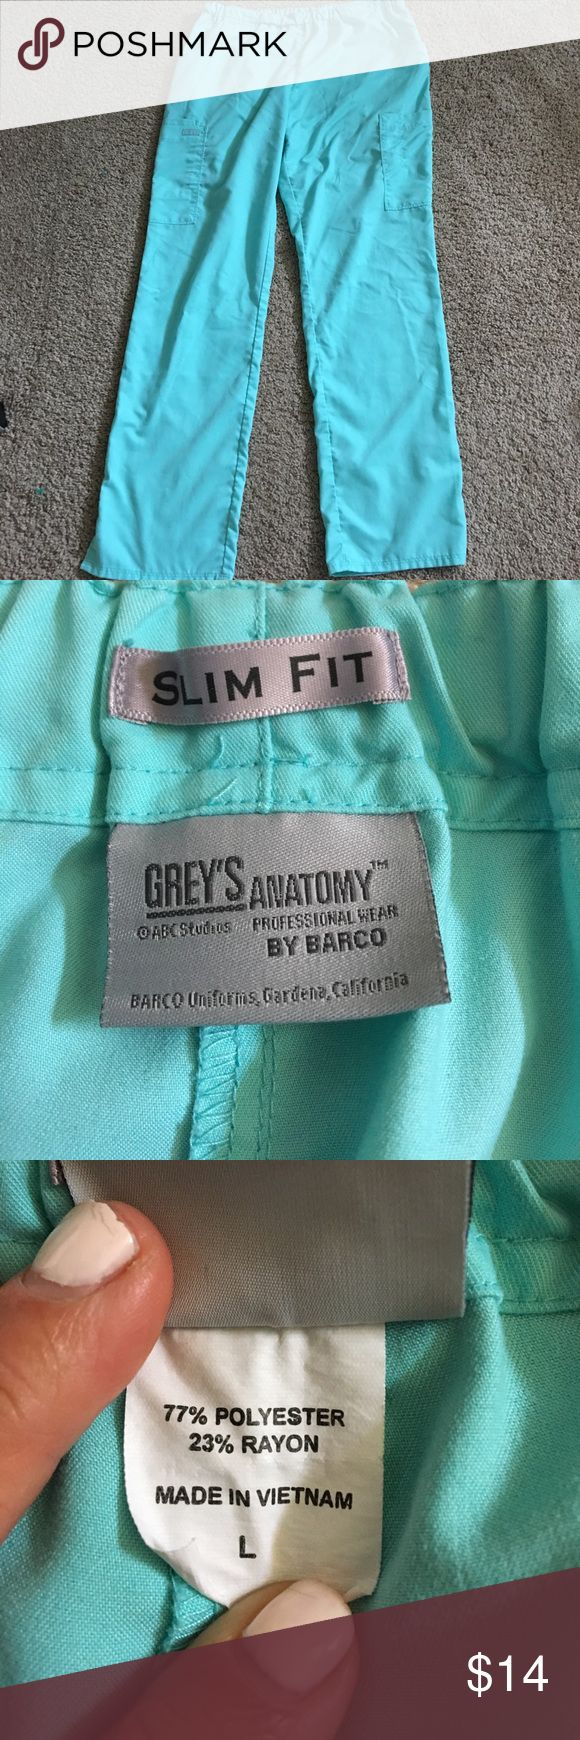 Grey's Anatomy size large slim fit scrub pants Finally they made a slim fit !!!🤗this is for a pair of Grey's Anatomy size large slim fit scrub pants see our other scrubs would like to bundle and save you money grey's Anatomy Pants